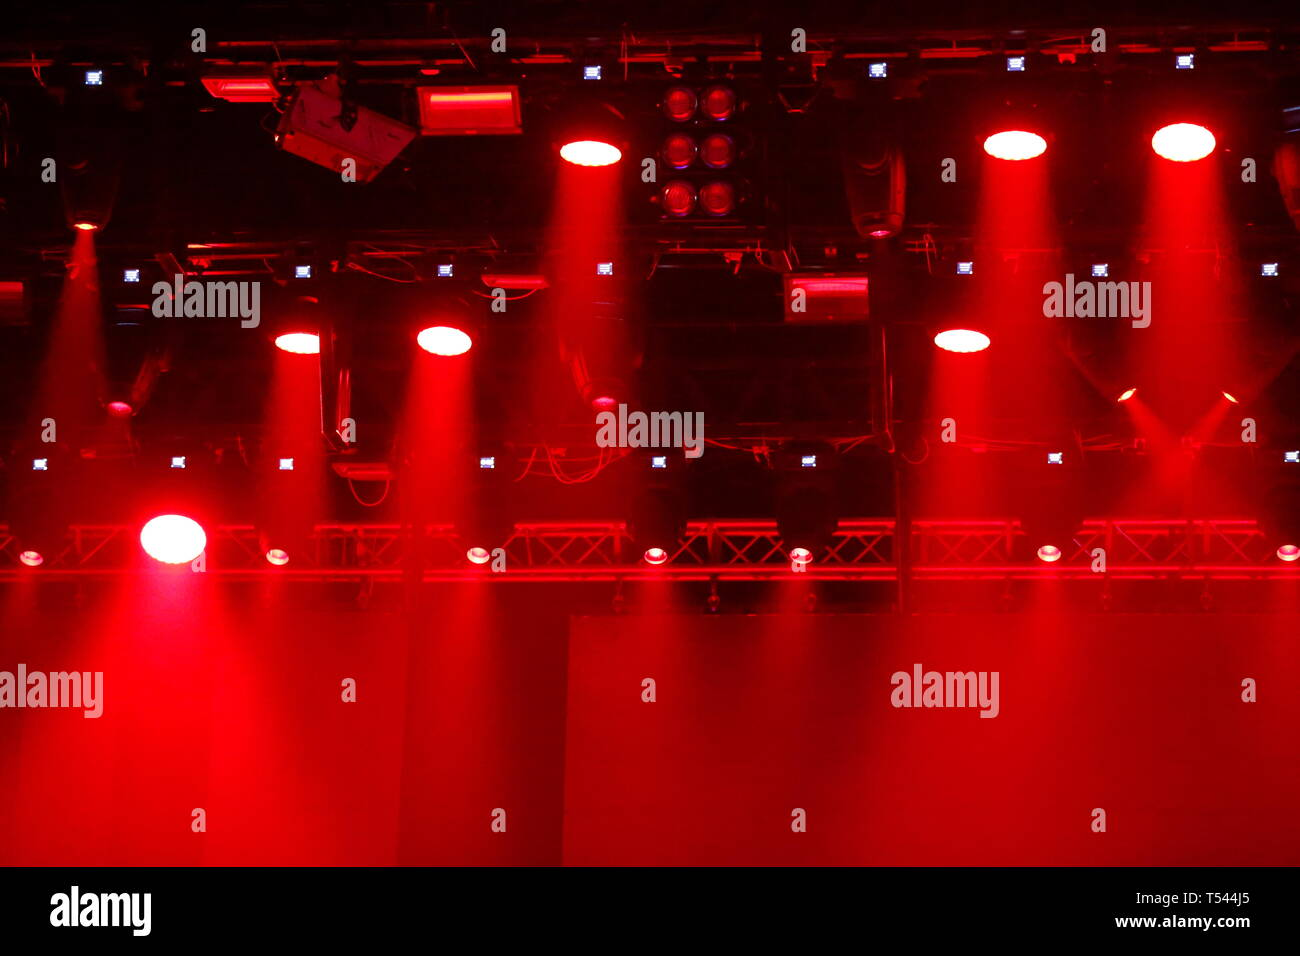 Concert spotlights.Red and white rays of powerful projectors on stage - Stock Image